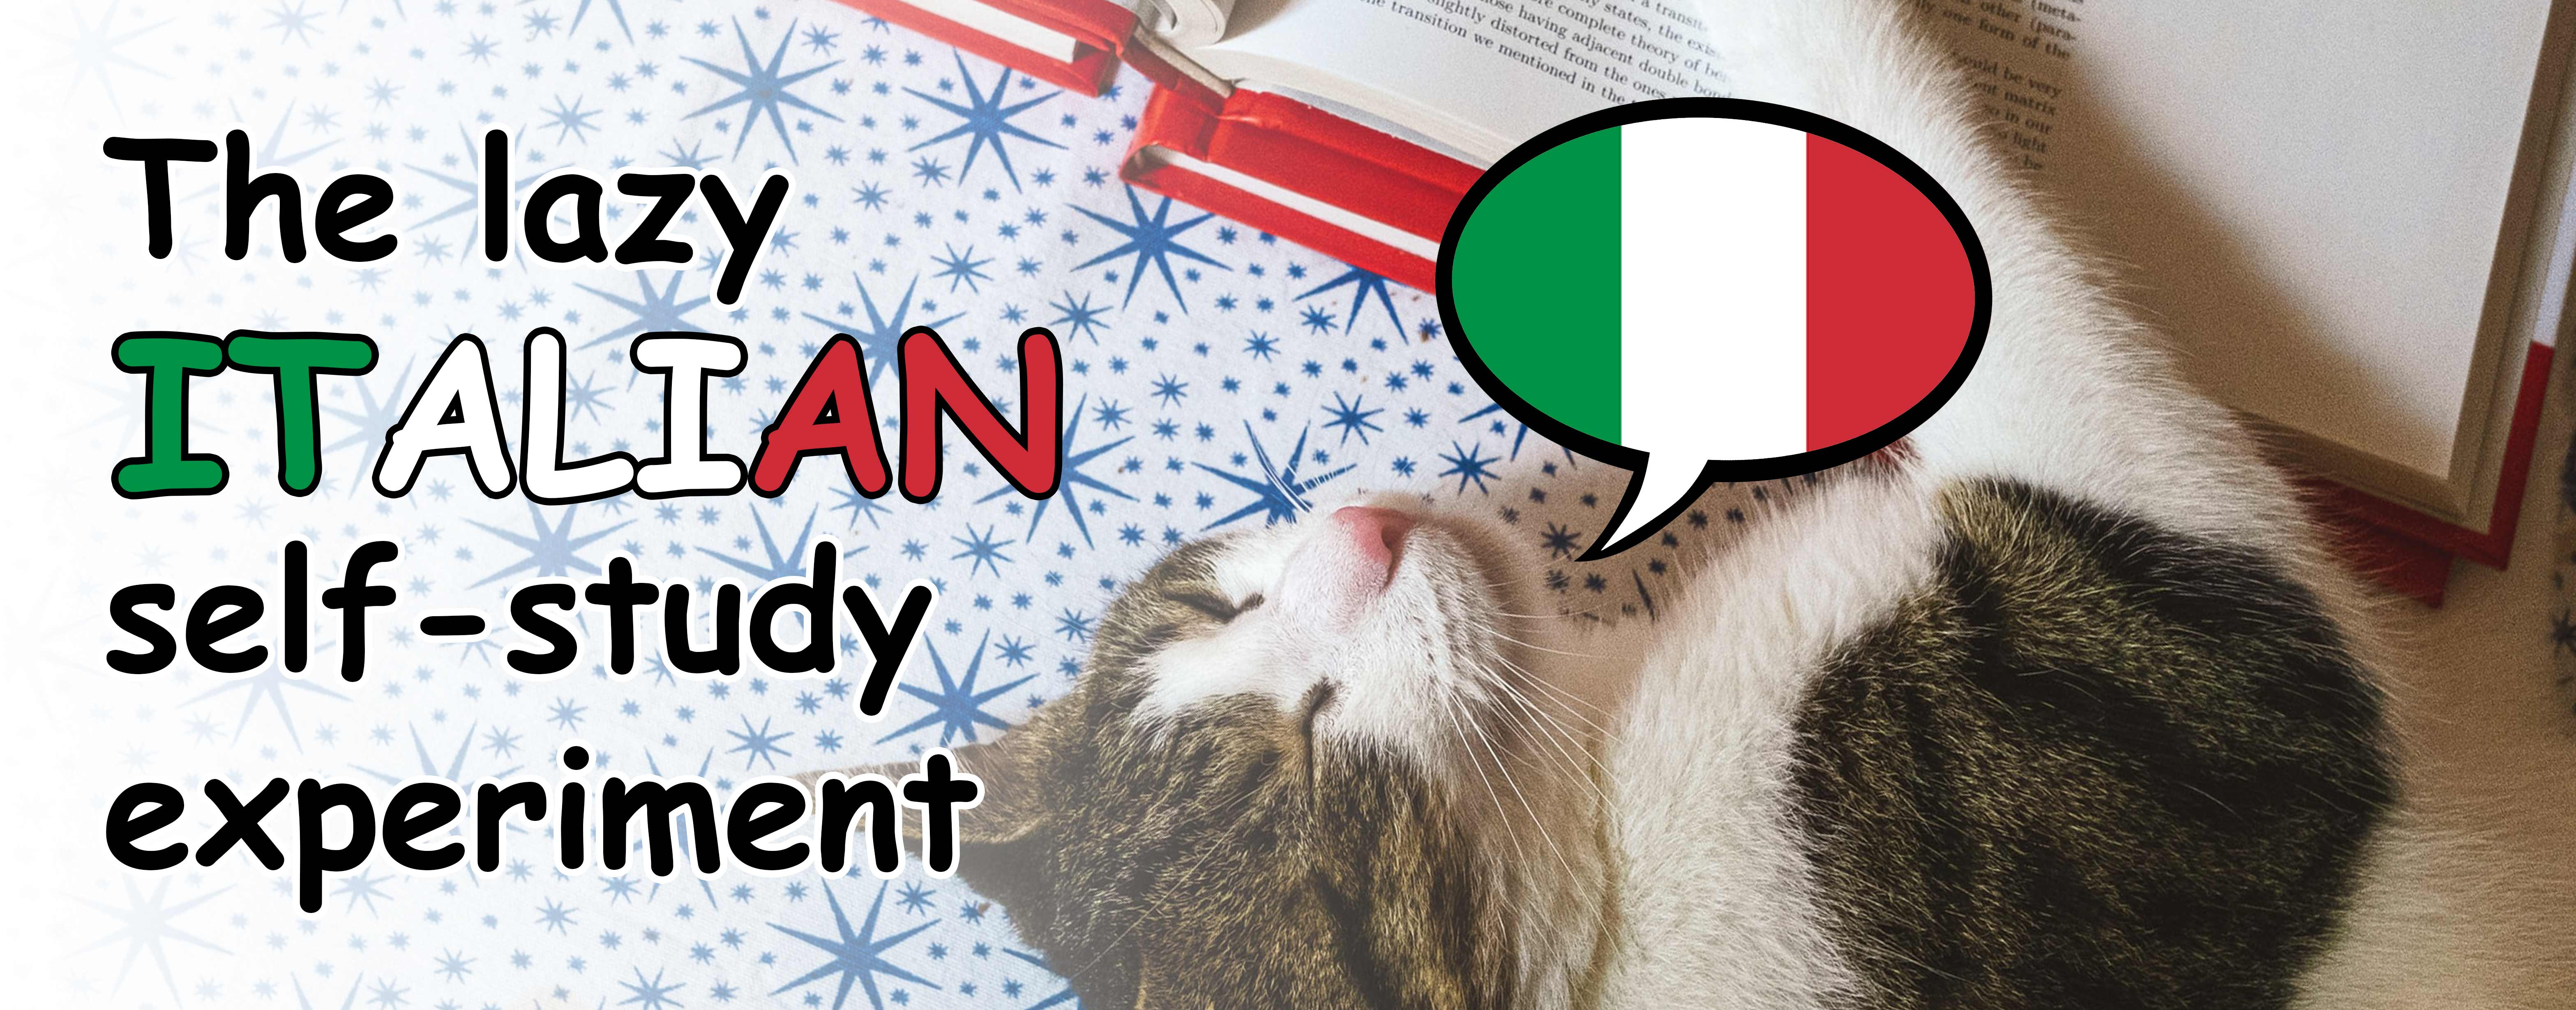 Banner for the lazy Italian self-study experiment: a sleepy cat hugging a book with a speech bubble containing an Italian flag